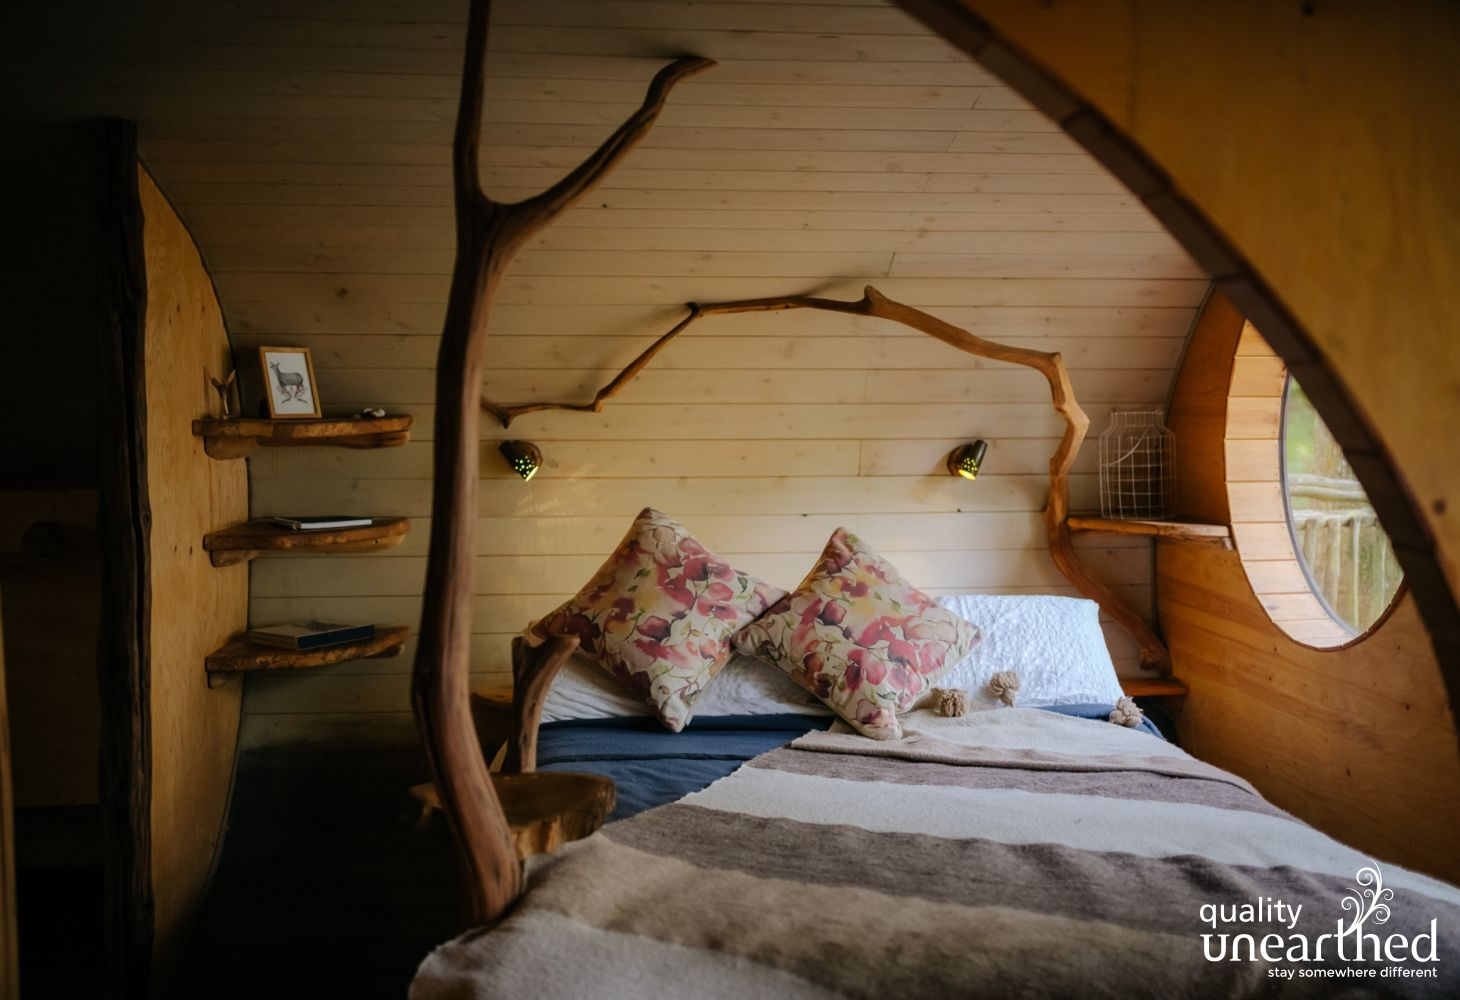 Double bed in a pine clad treehouse bedroom. Hand carved bookshelves and decorative tree structures add to the romantic treehouse atmosphere